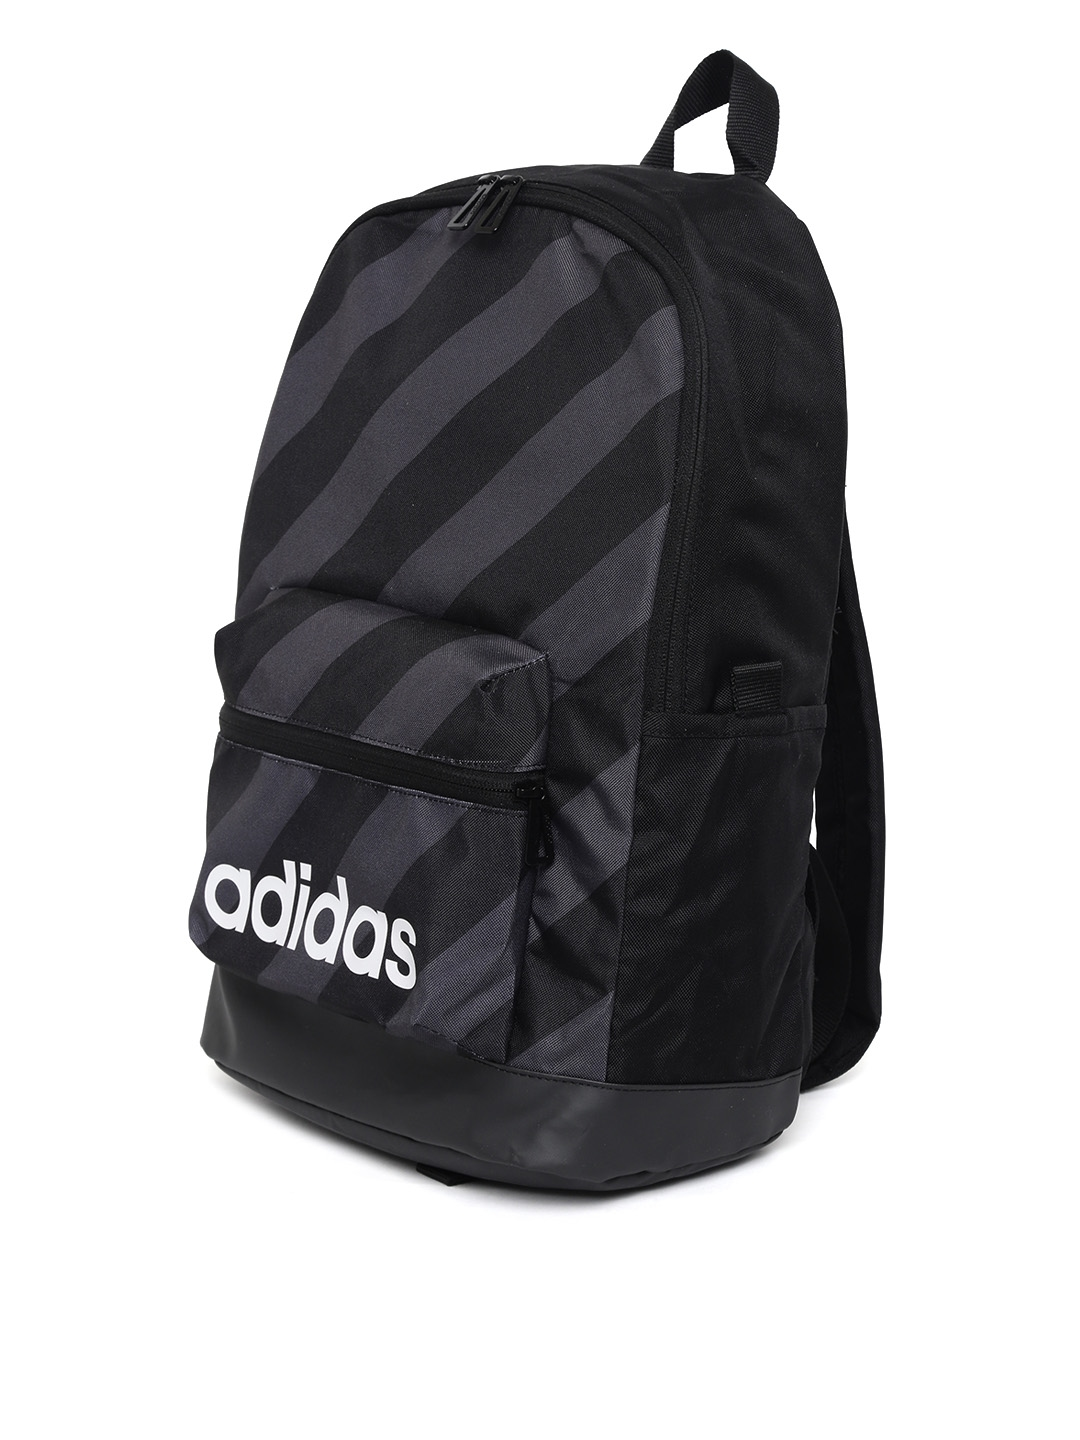 Buy ADIDAS Unisex Black   Charcoal Grey AOP Daily Striped Backpack ... 4ceec5d98f6ac